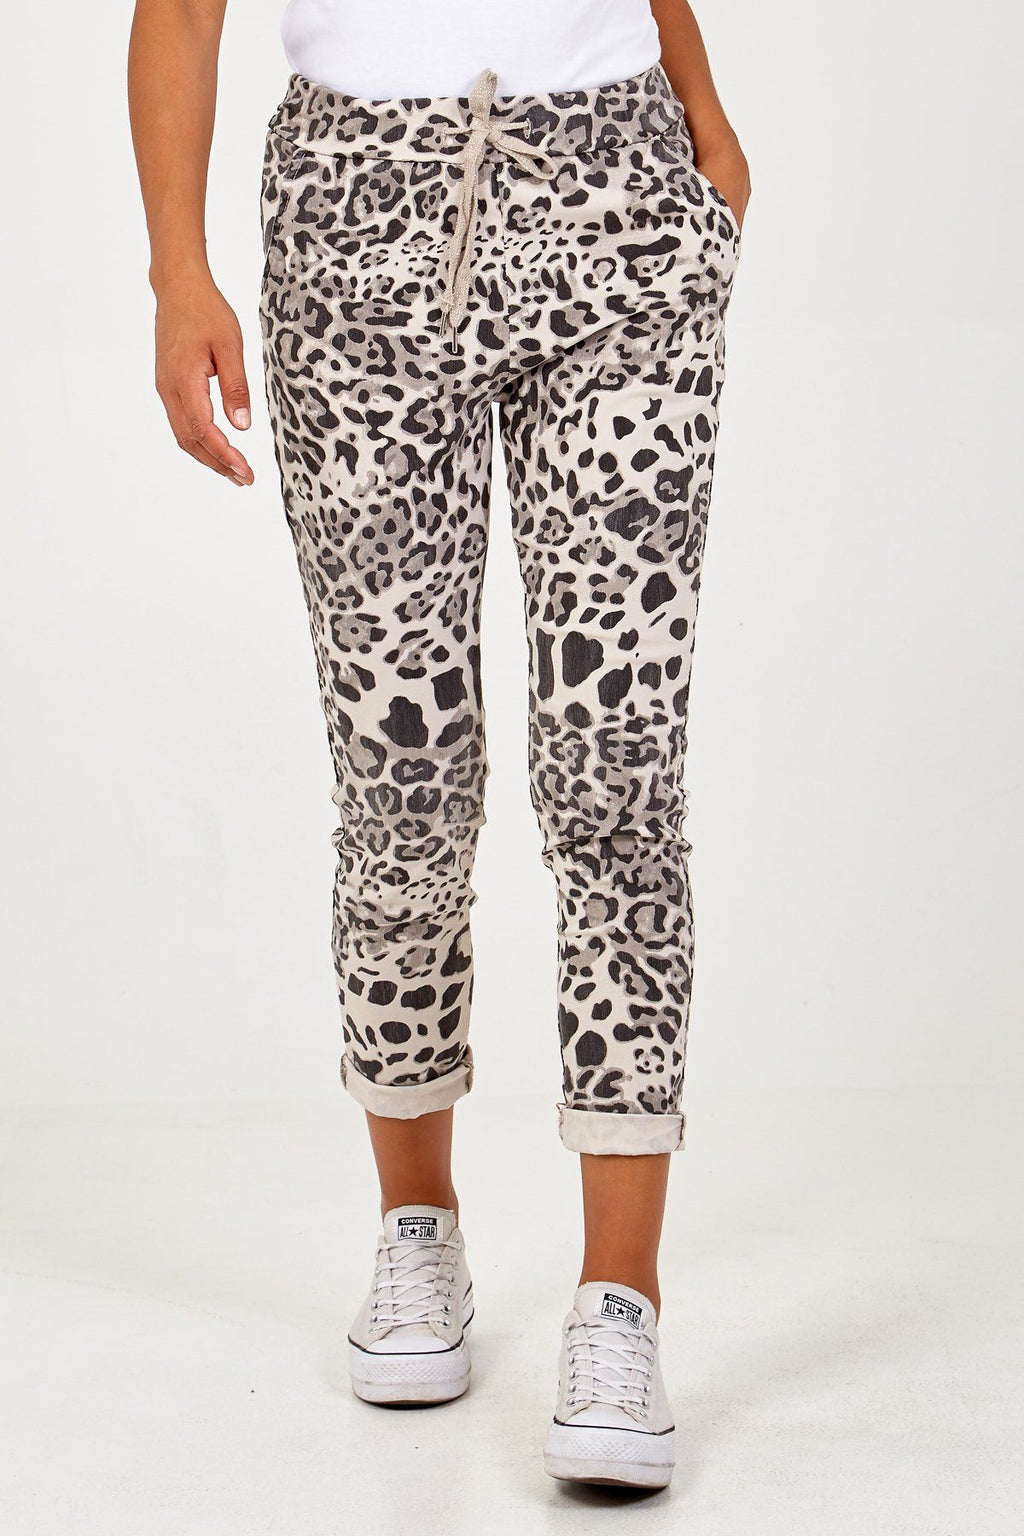 Pants 'Norcelli' - Leopard